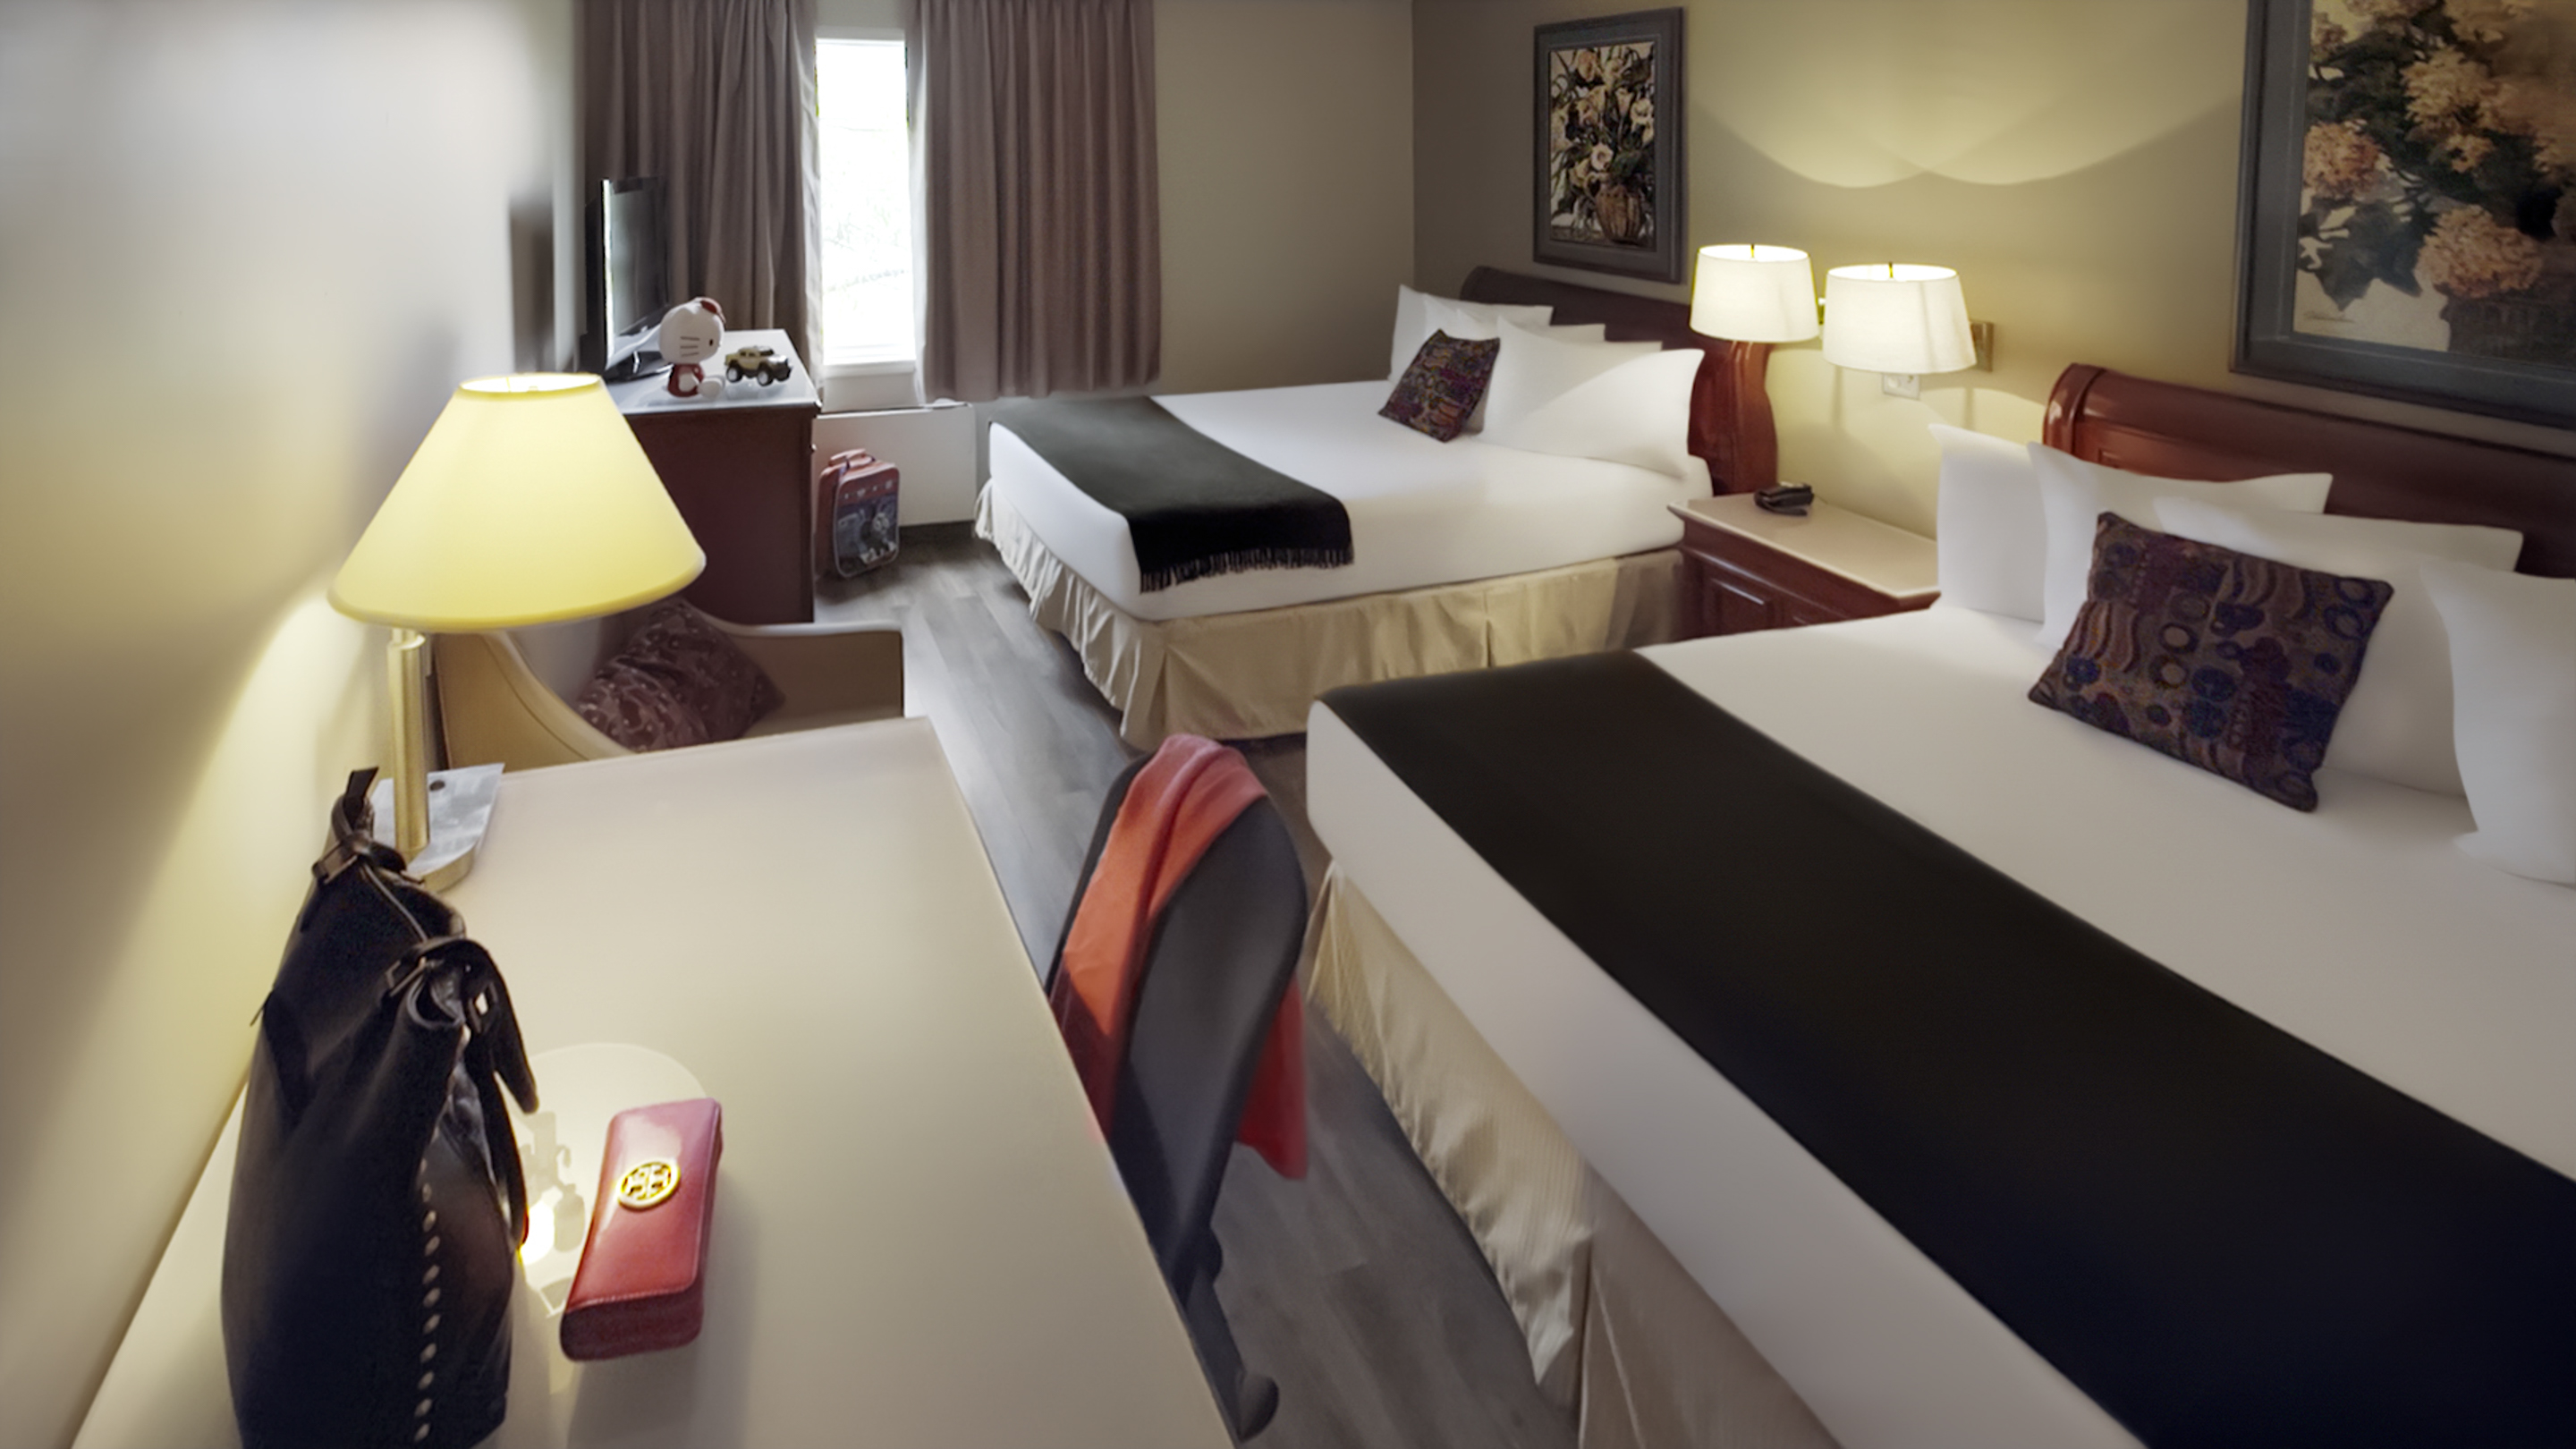 8591.11614.sydney.hearthstone-inn-sydney.room.maritime-two-queen-size-beds.01